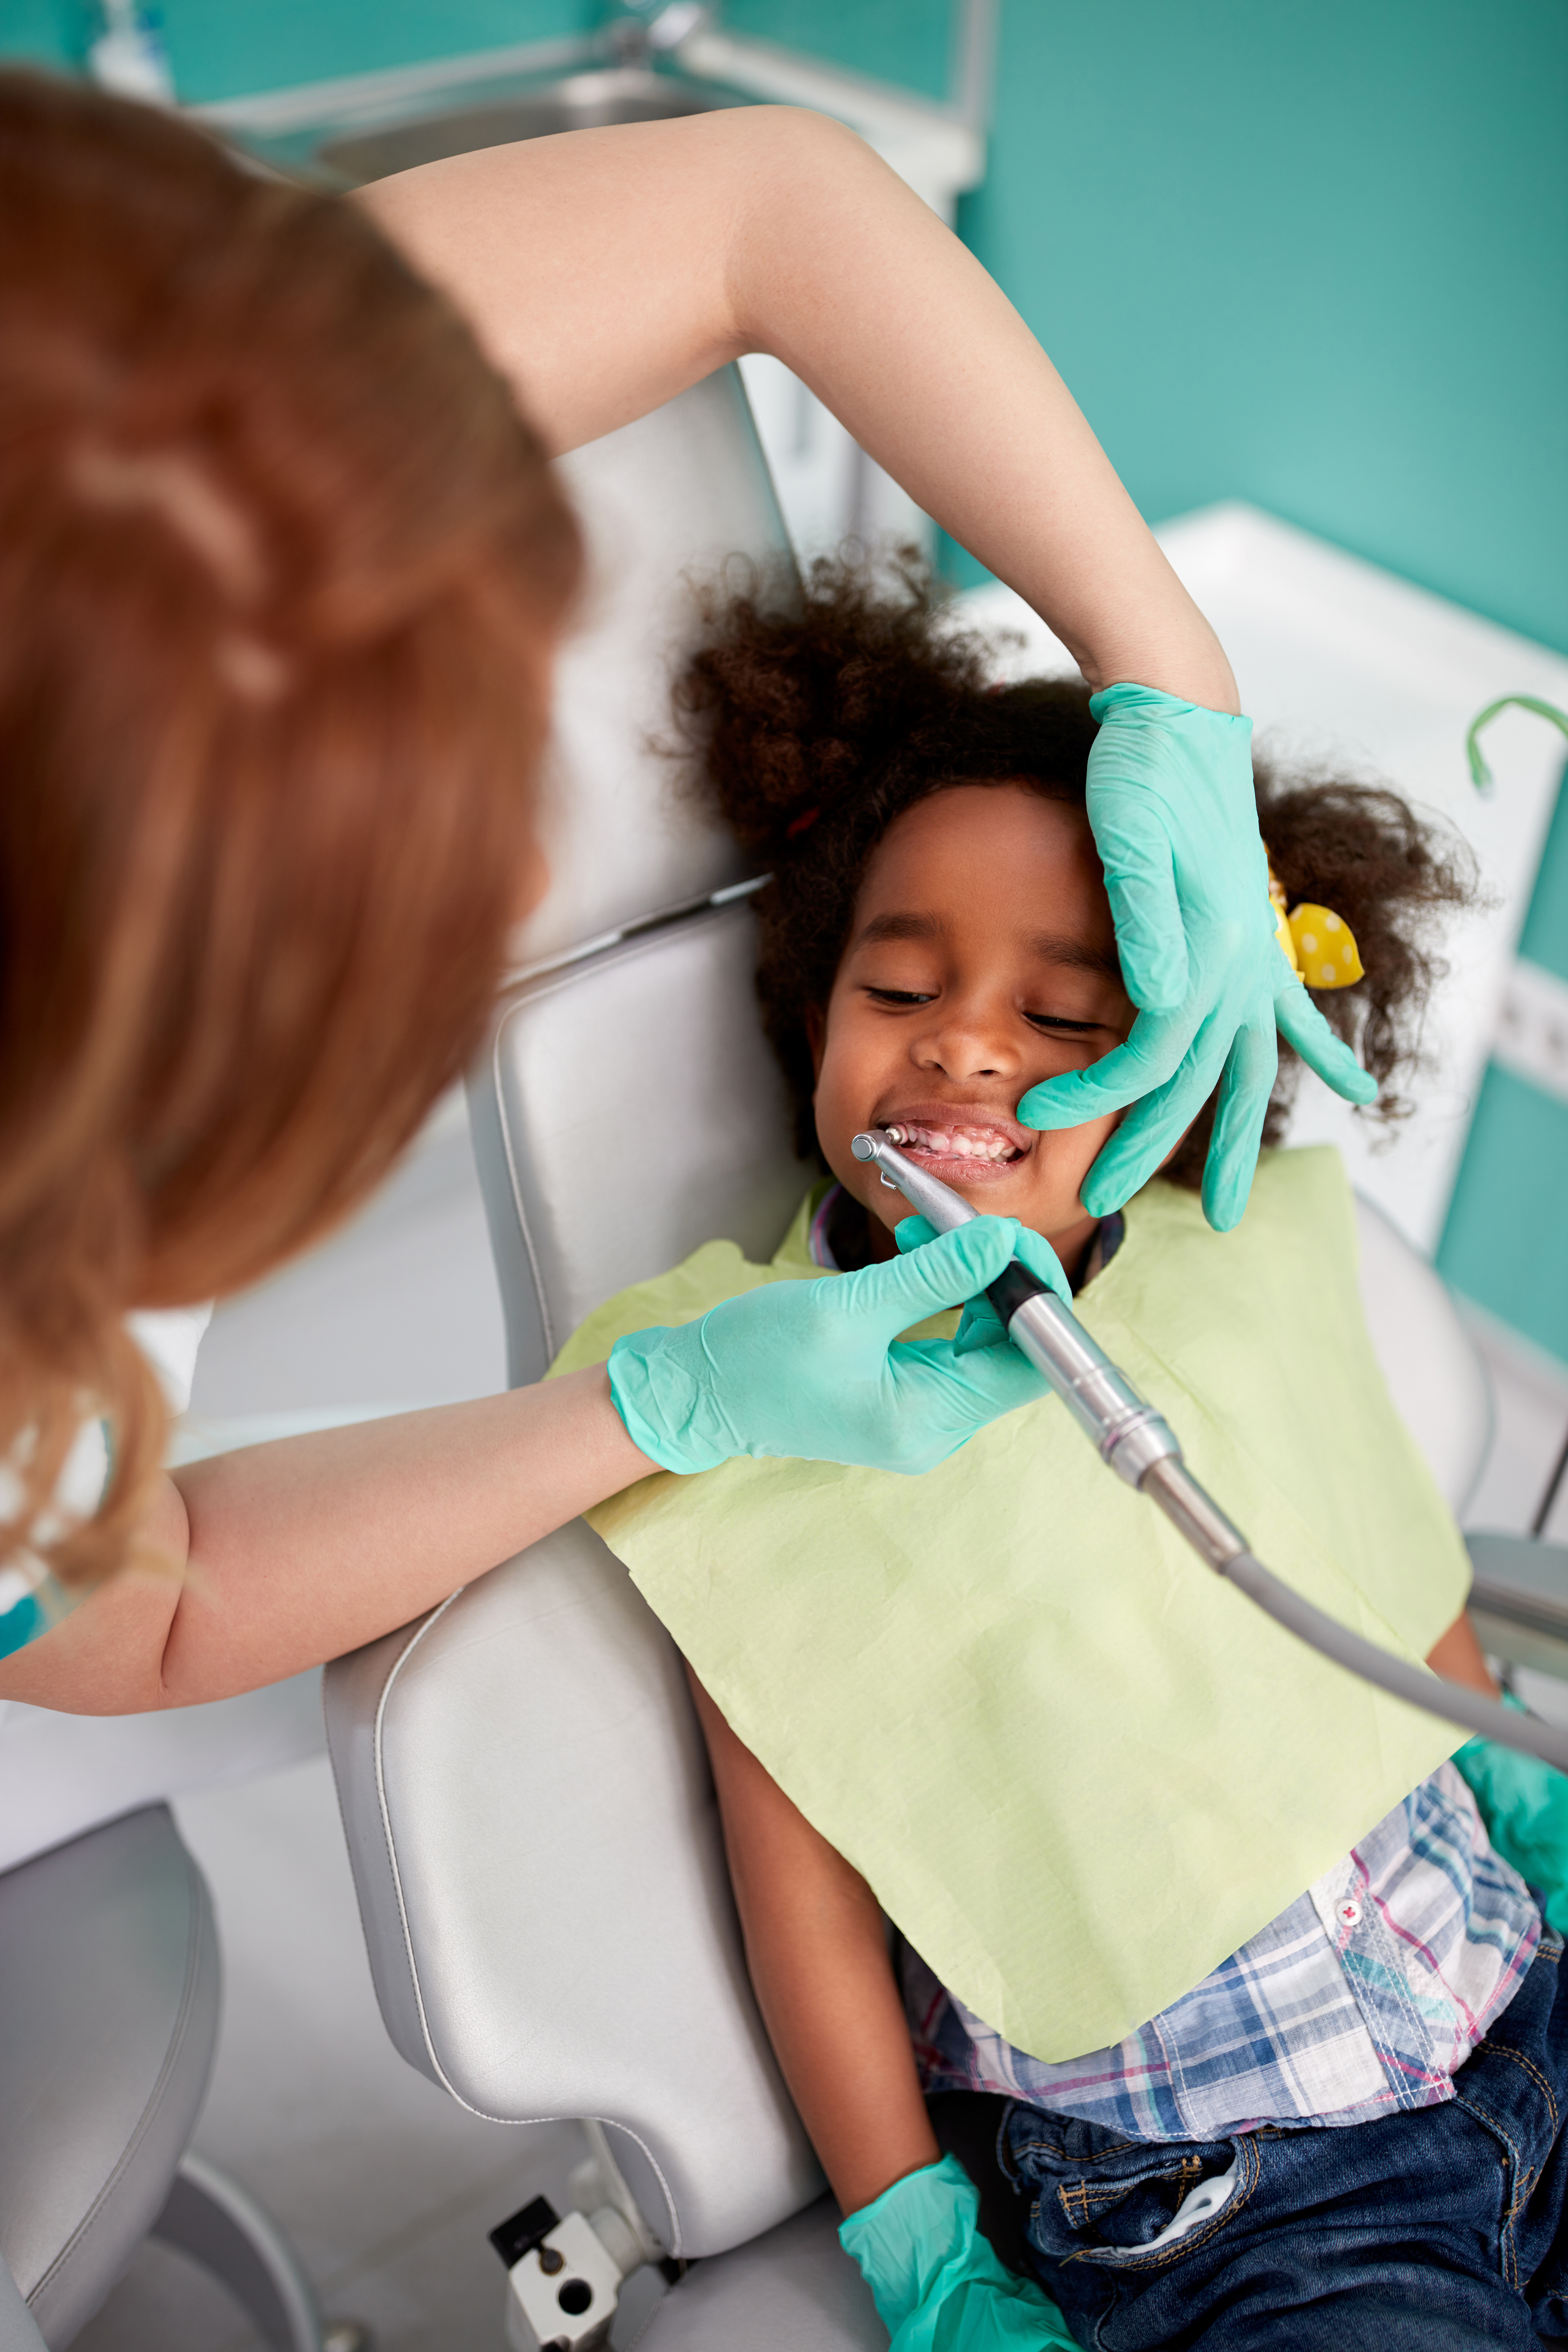 _Dental polish teeth to young patient in